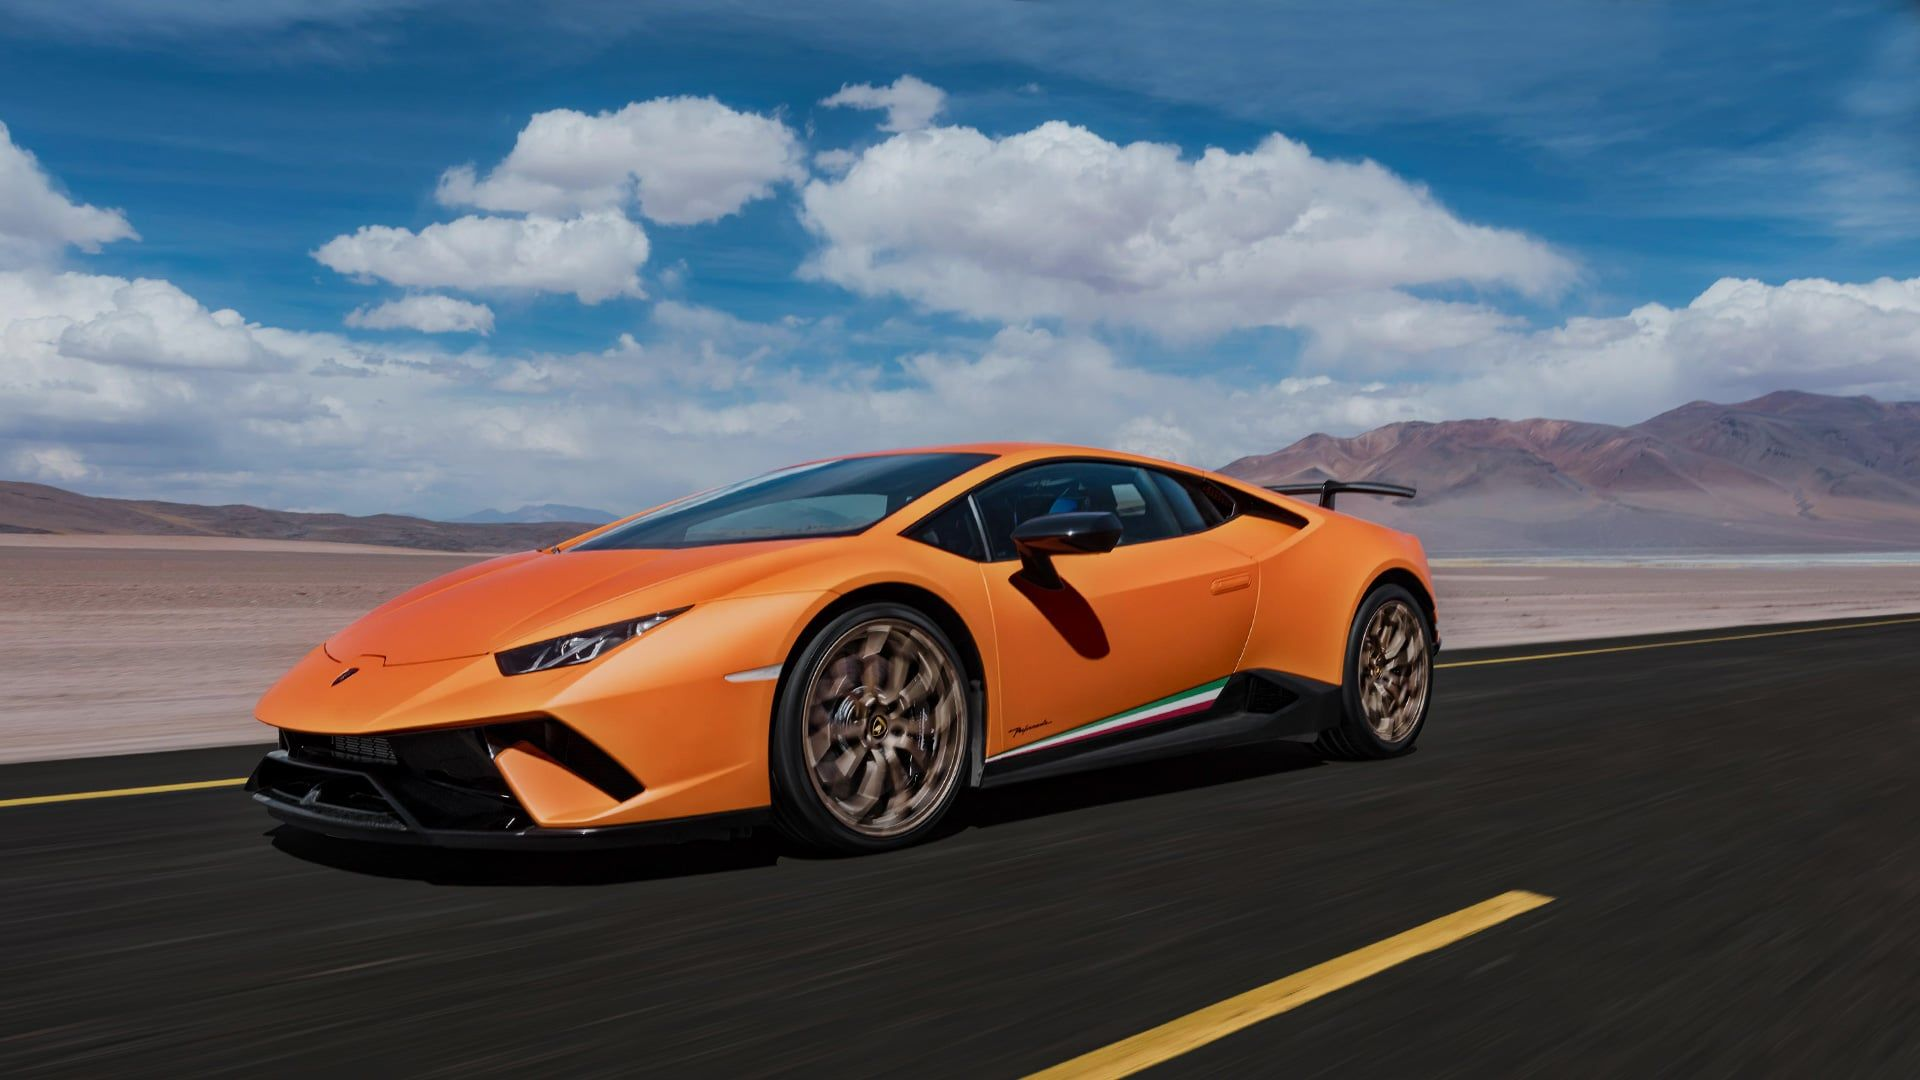 lamborghini hurac n performante technical specifications pictures rh pinterest com